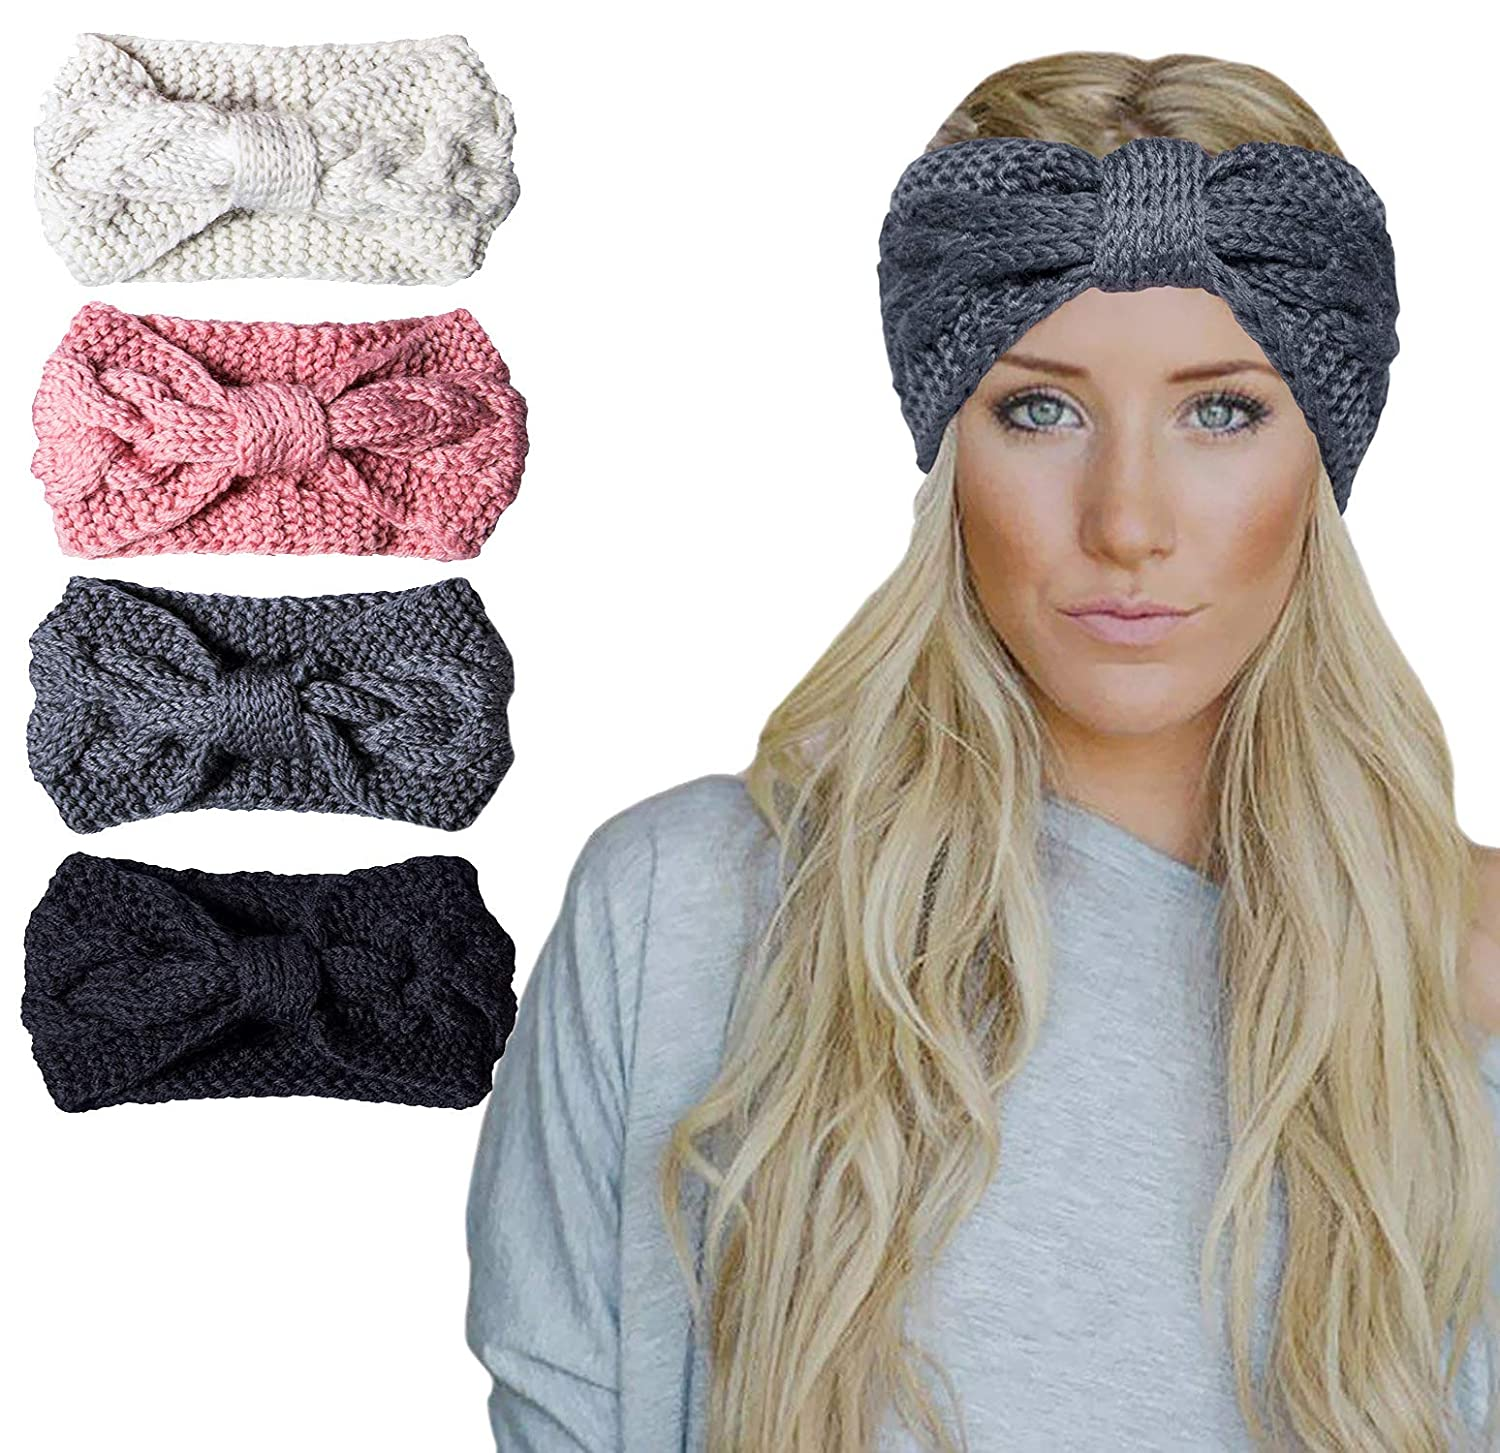 How to american wear apparel twist headband recommendations to wear for autumn in 2019